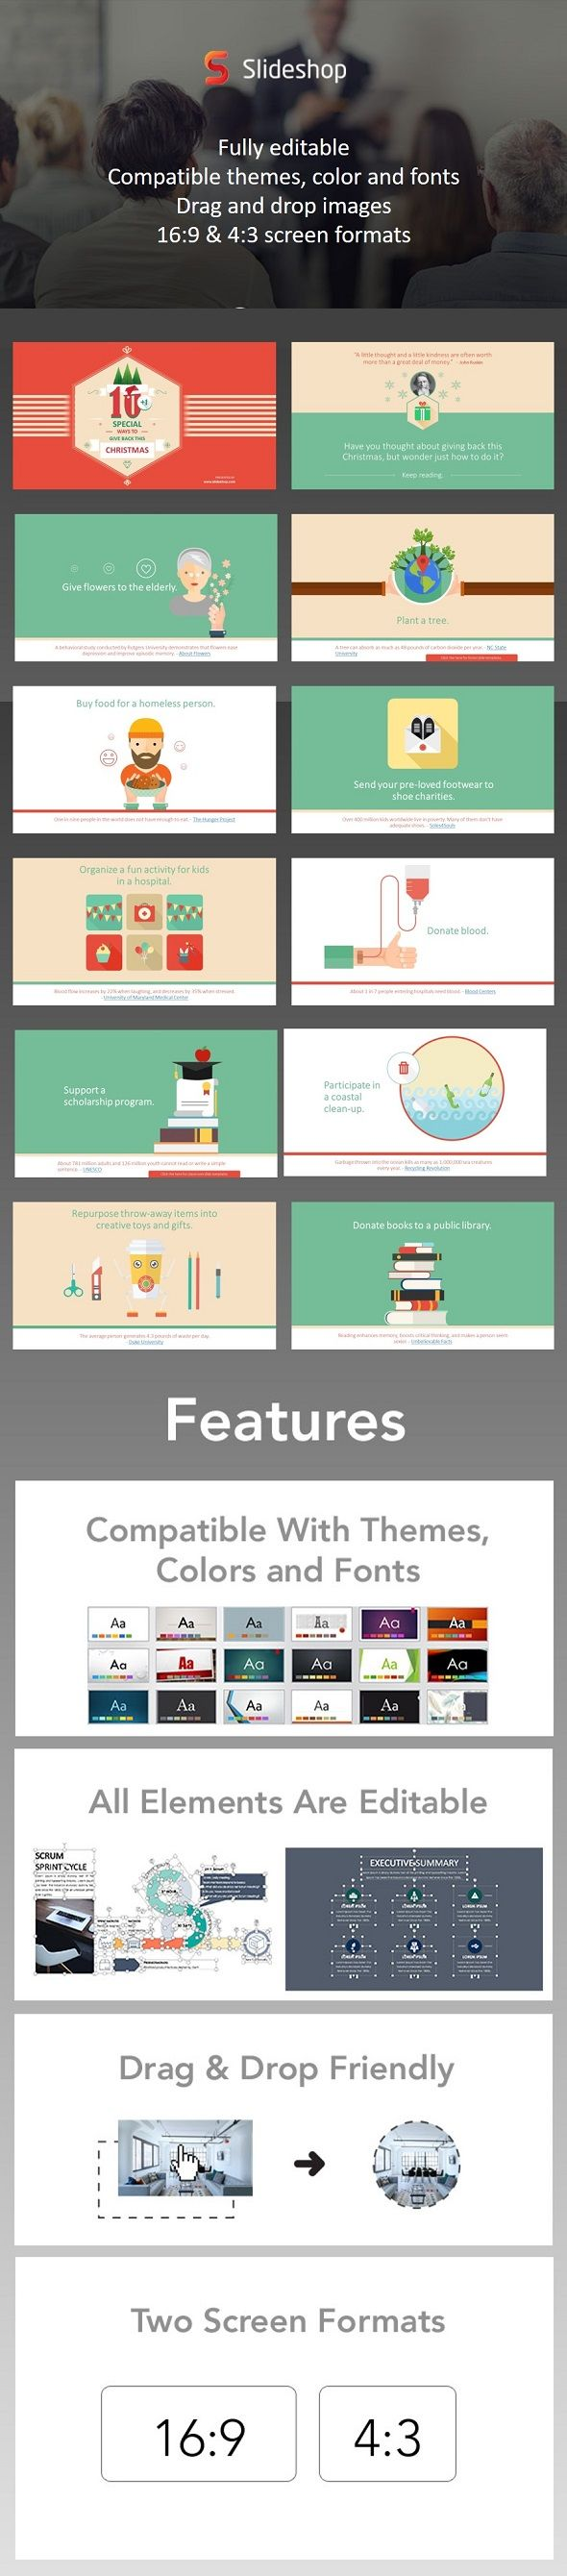 How to give back this christmas presentation templates power how to give back this christmas presentation templatespresentation toneelgroepblik Gallery